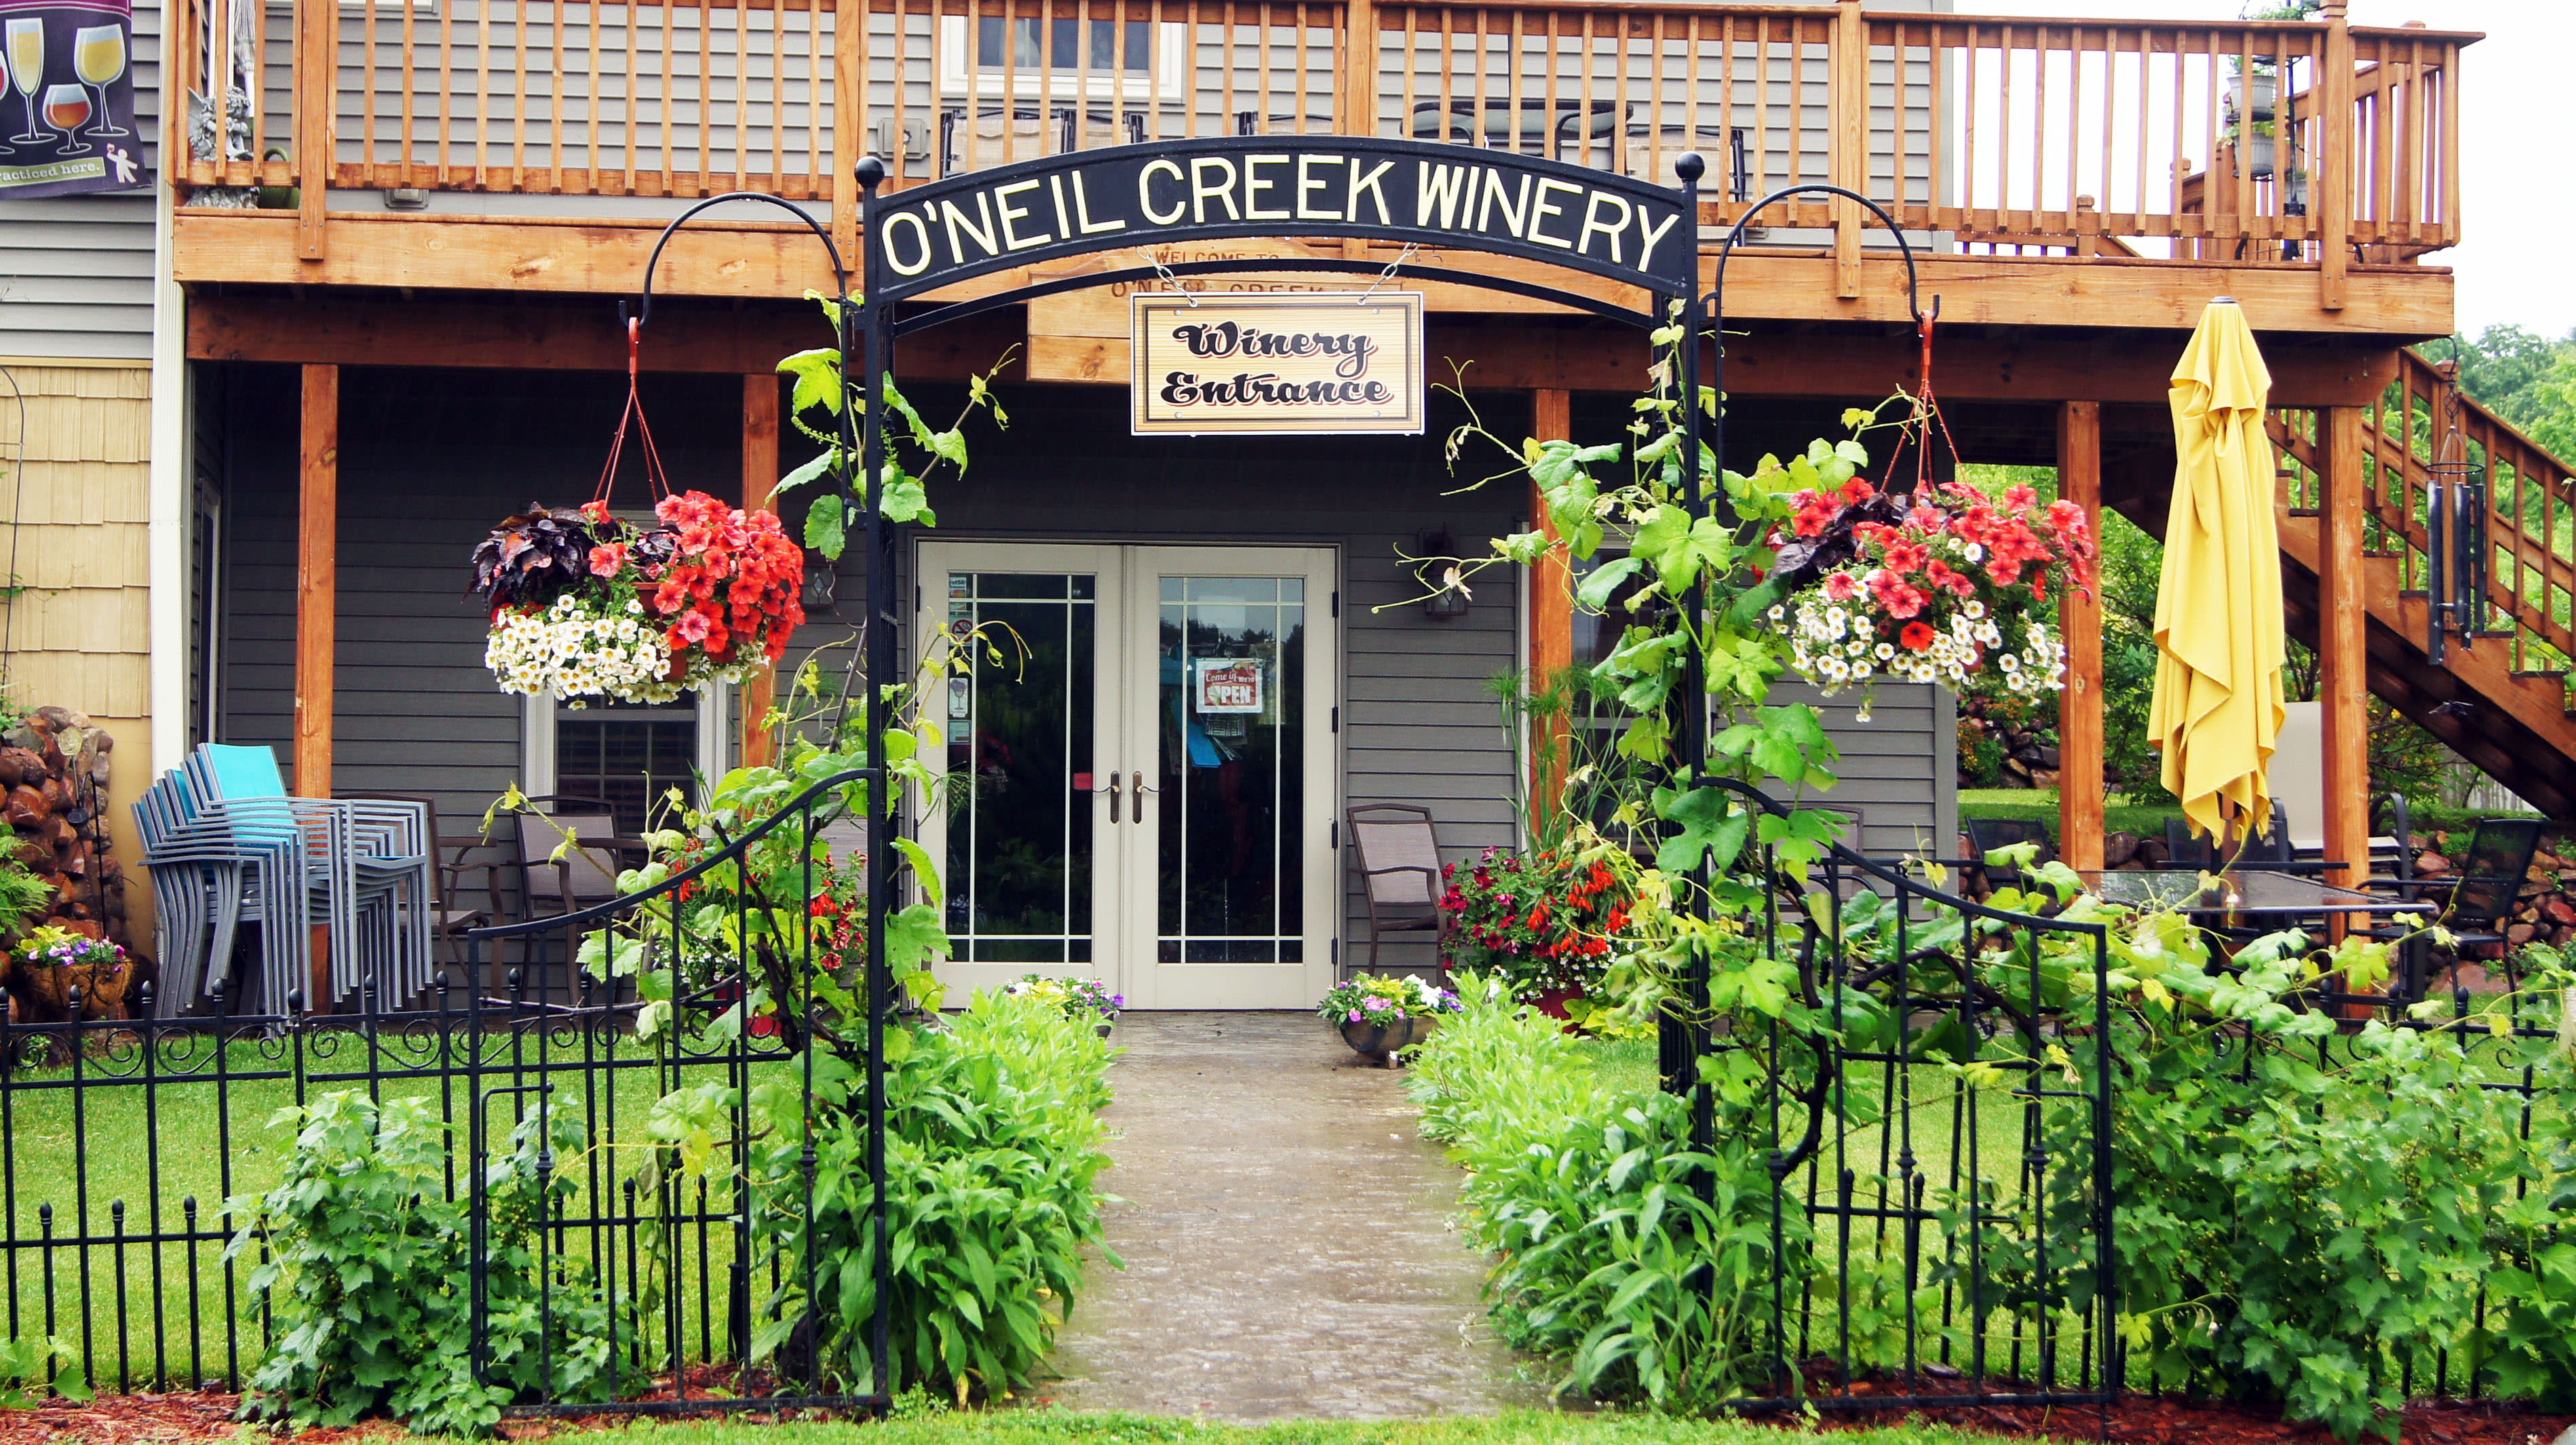 O'Neil Creek Winery - Photo by: Ty Randerson